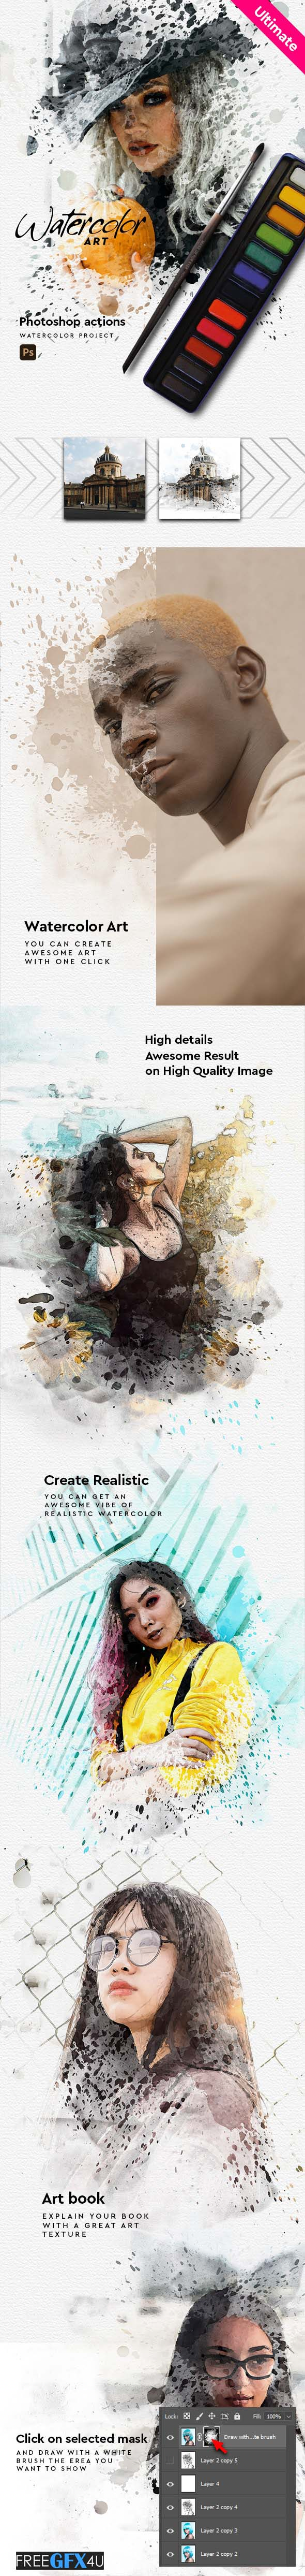 Watercolor Art Aquarelle Photoshop Action